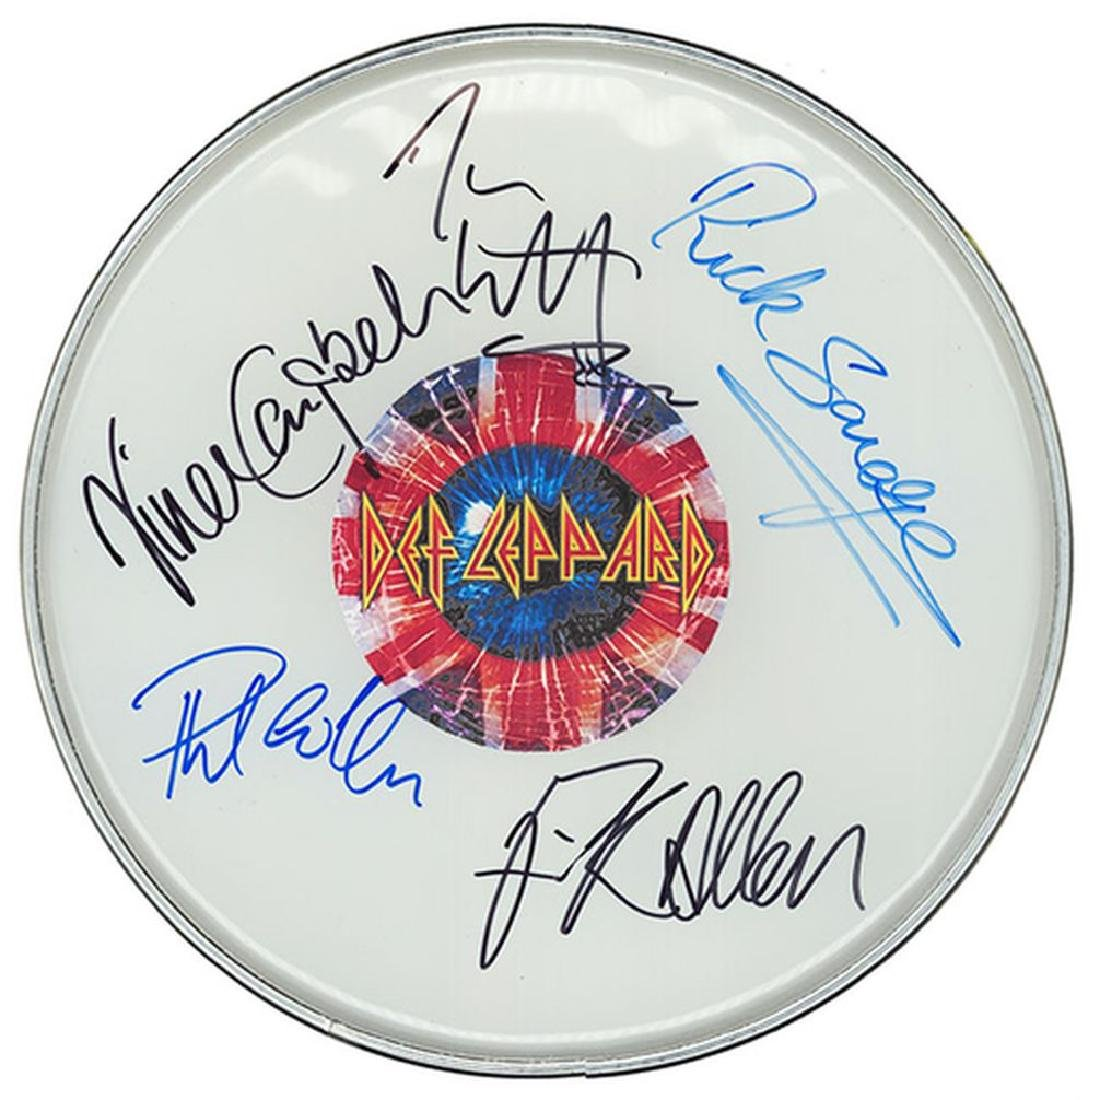 Def Leppard Signed Drum Head